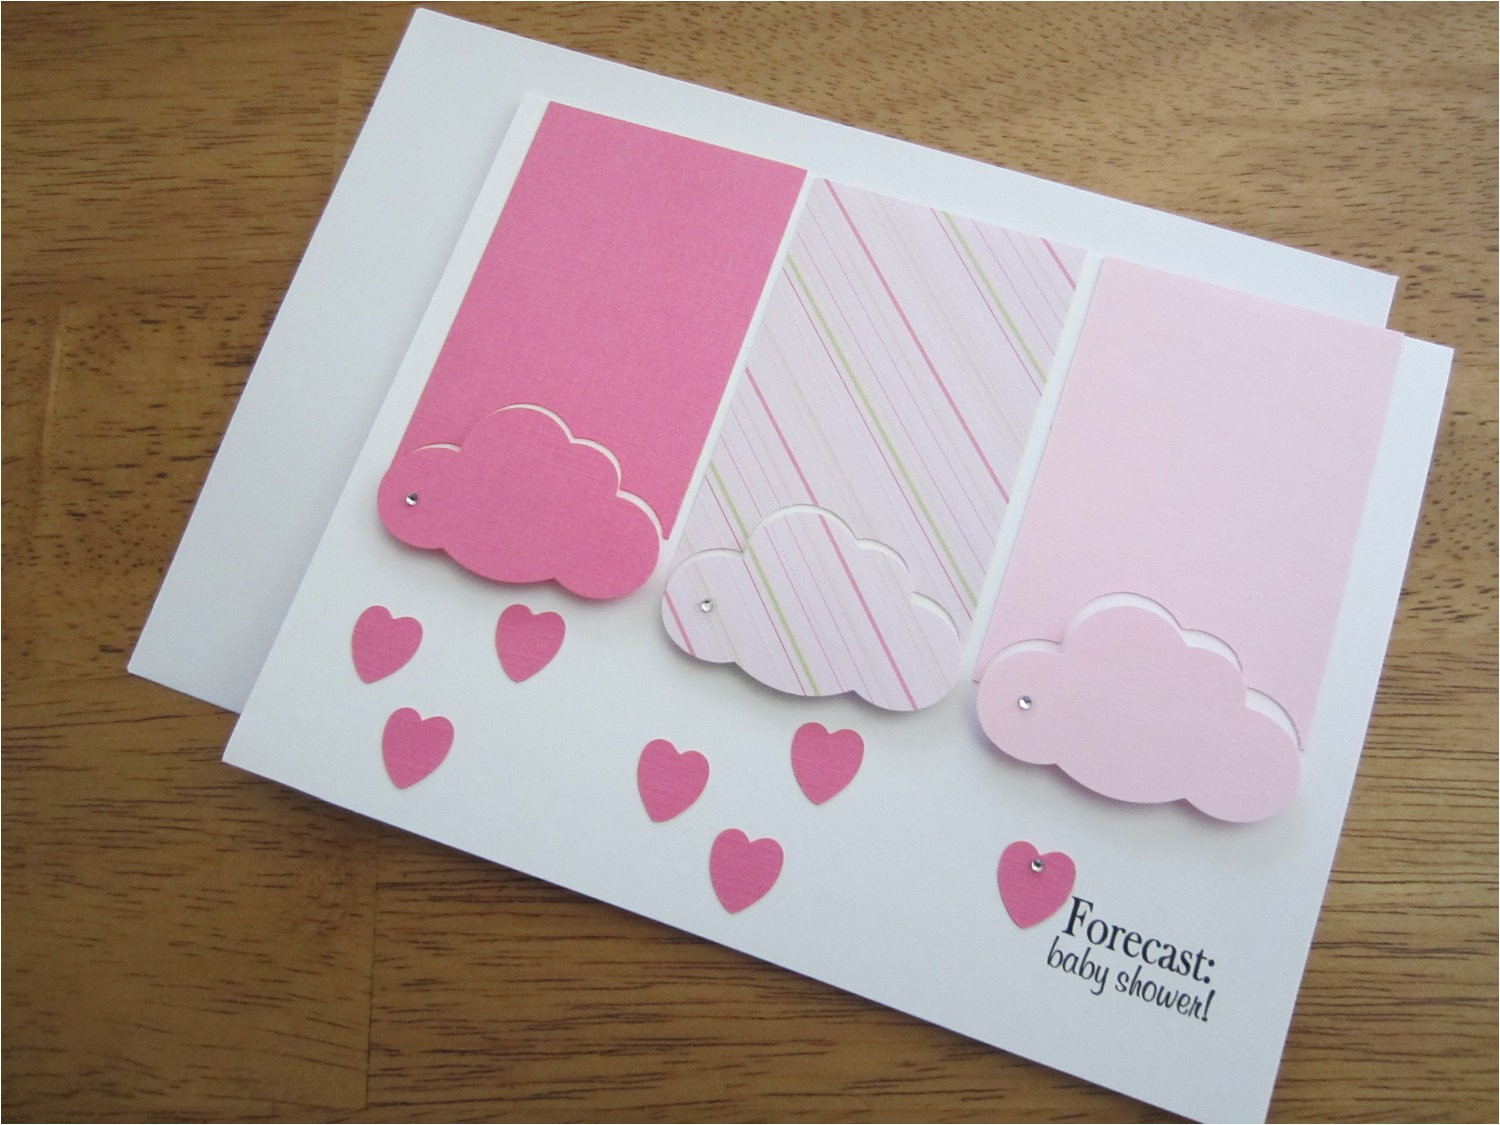 How to Make A Baby Shower Invitation Card Diy Baby Shower Invitations Ideas to Make at Home